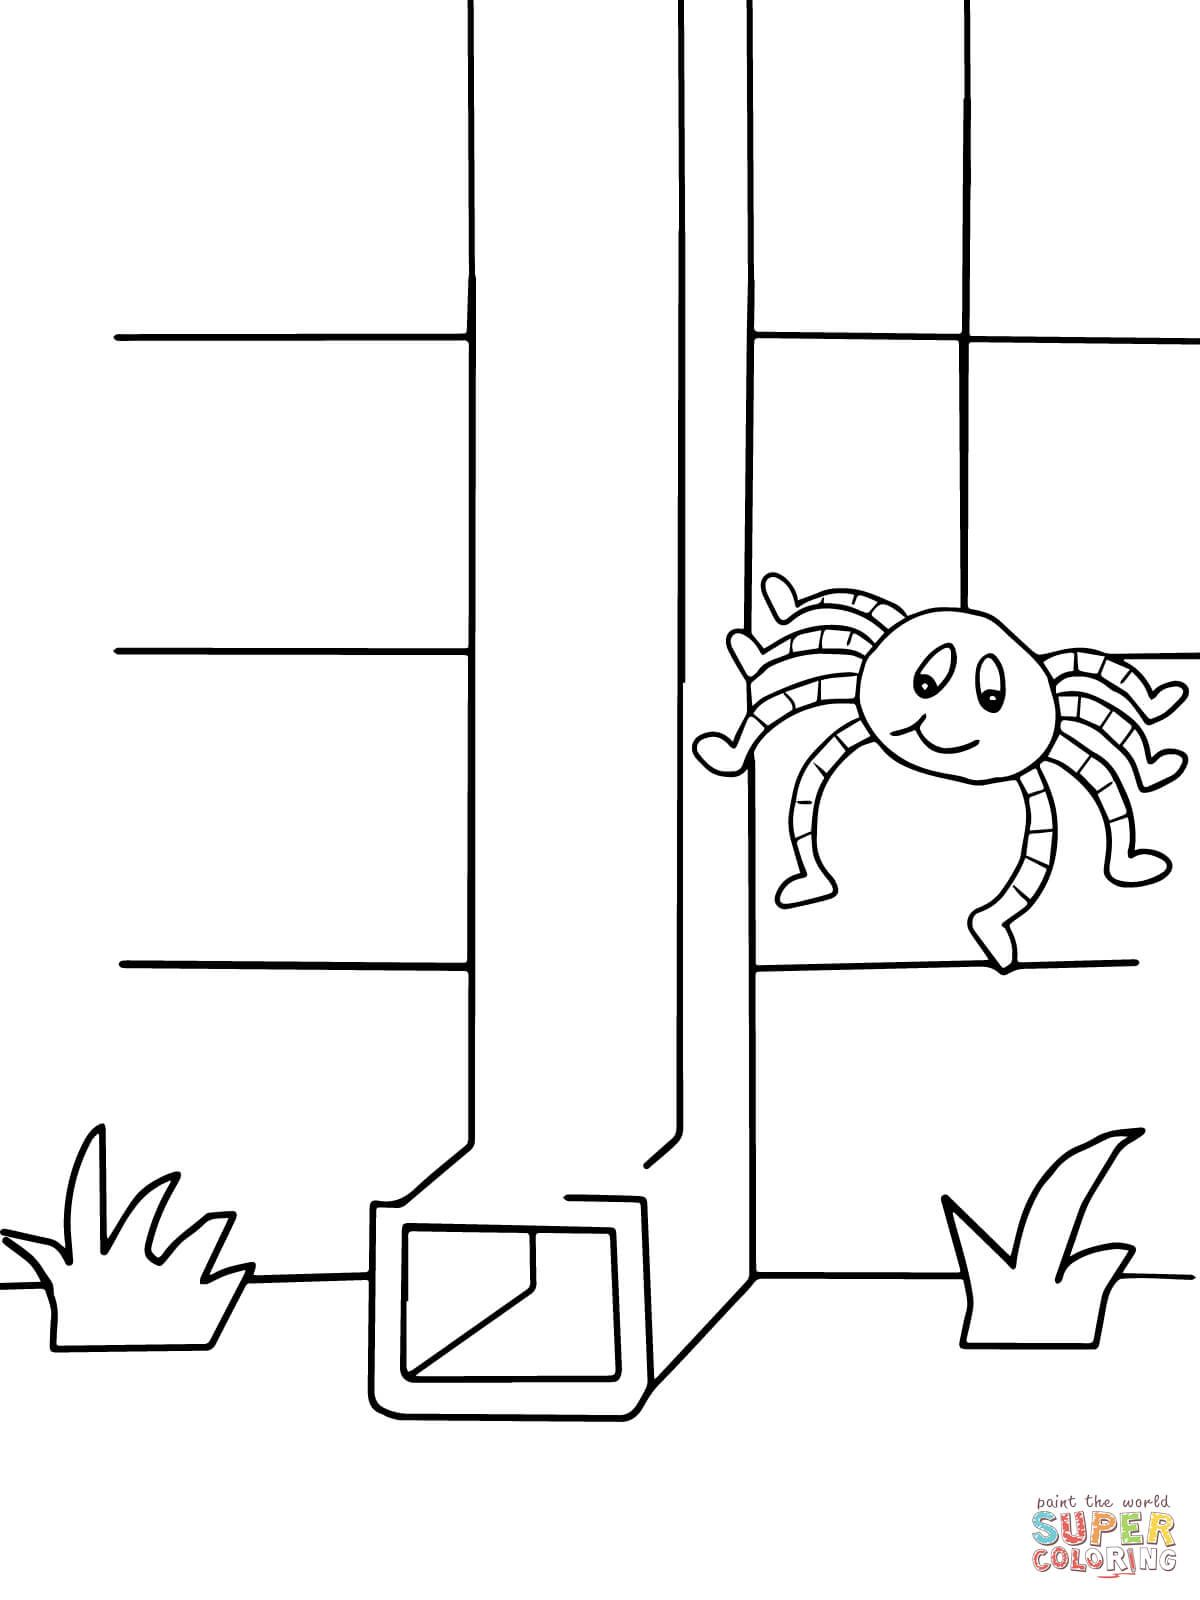 Itsy Bitsy Spider Super Coloring Nursery Rhymes